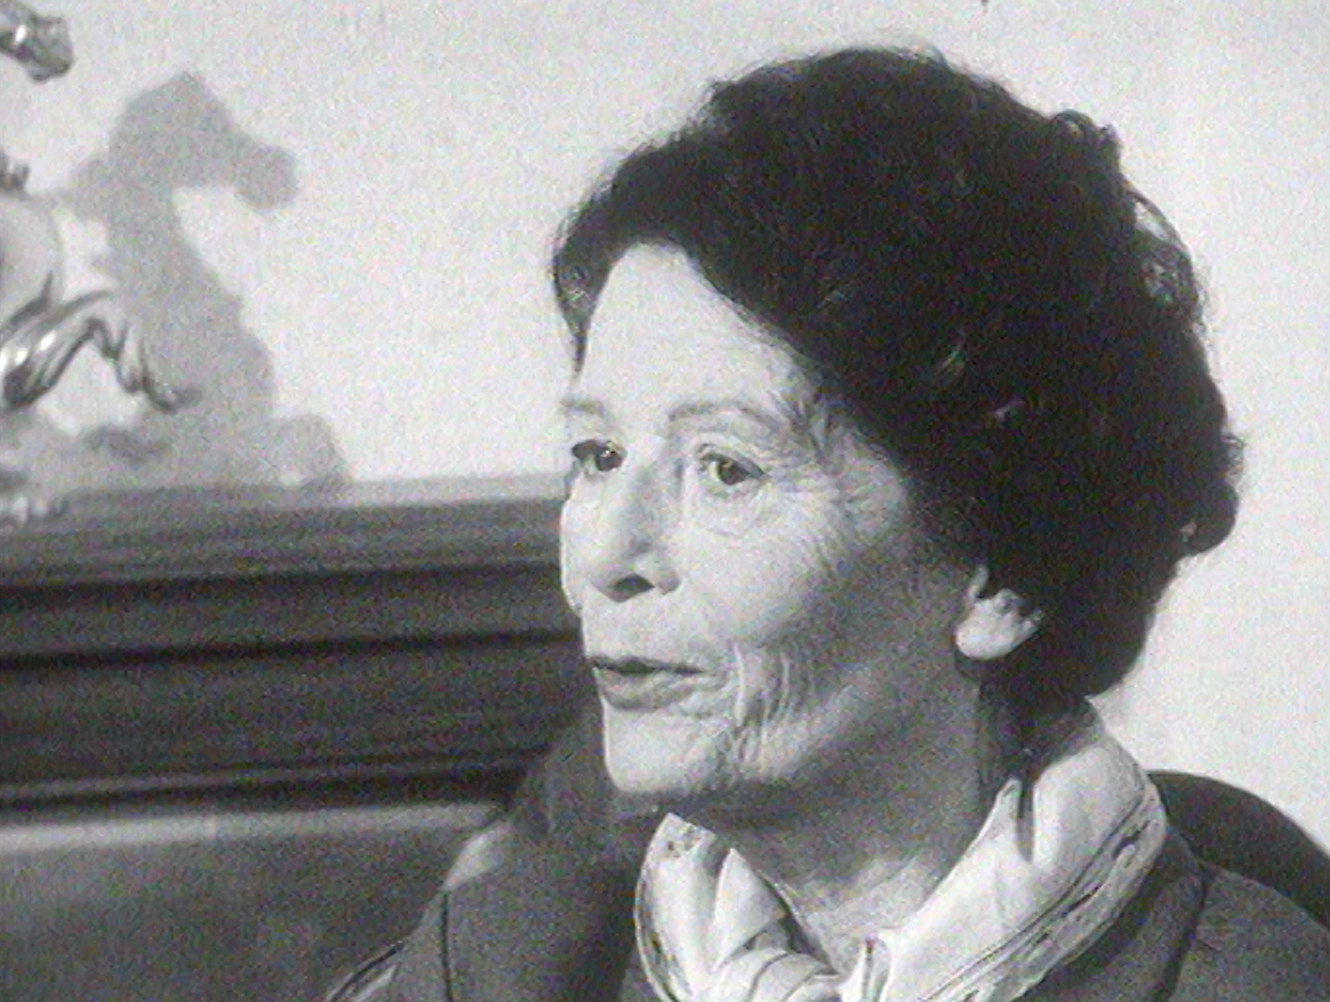 L'auteure vaudoise Catherine Colomb, 1961.